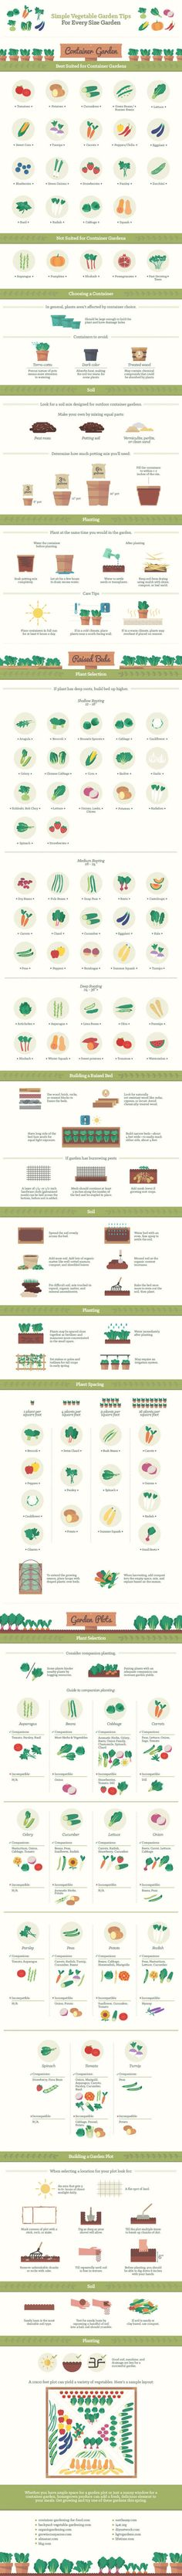 An Extensive Guide to Growing Vegetables | Mental Floss